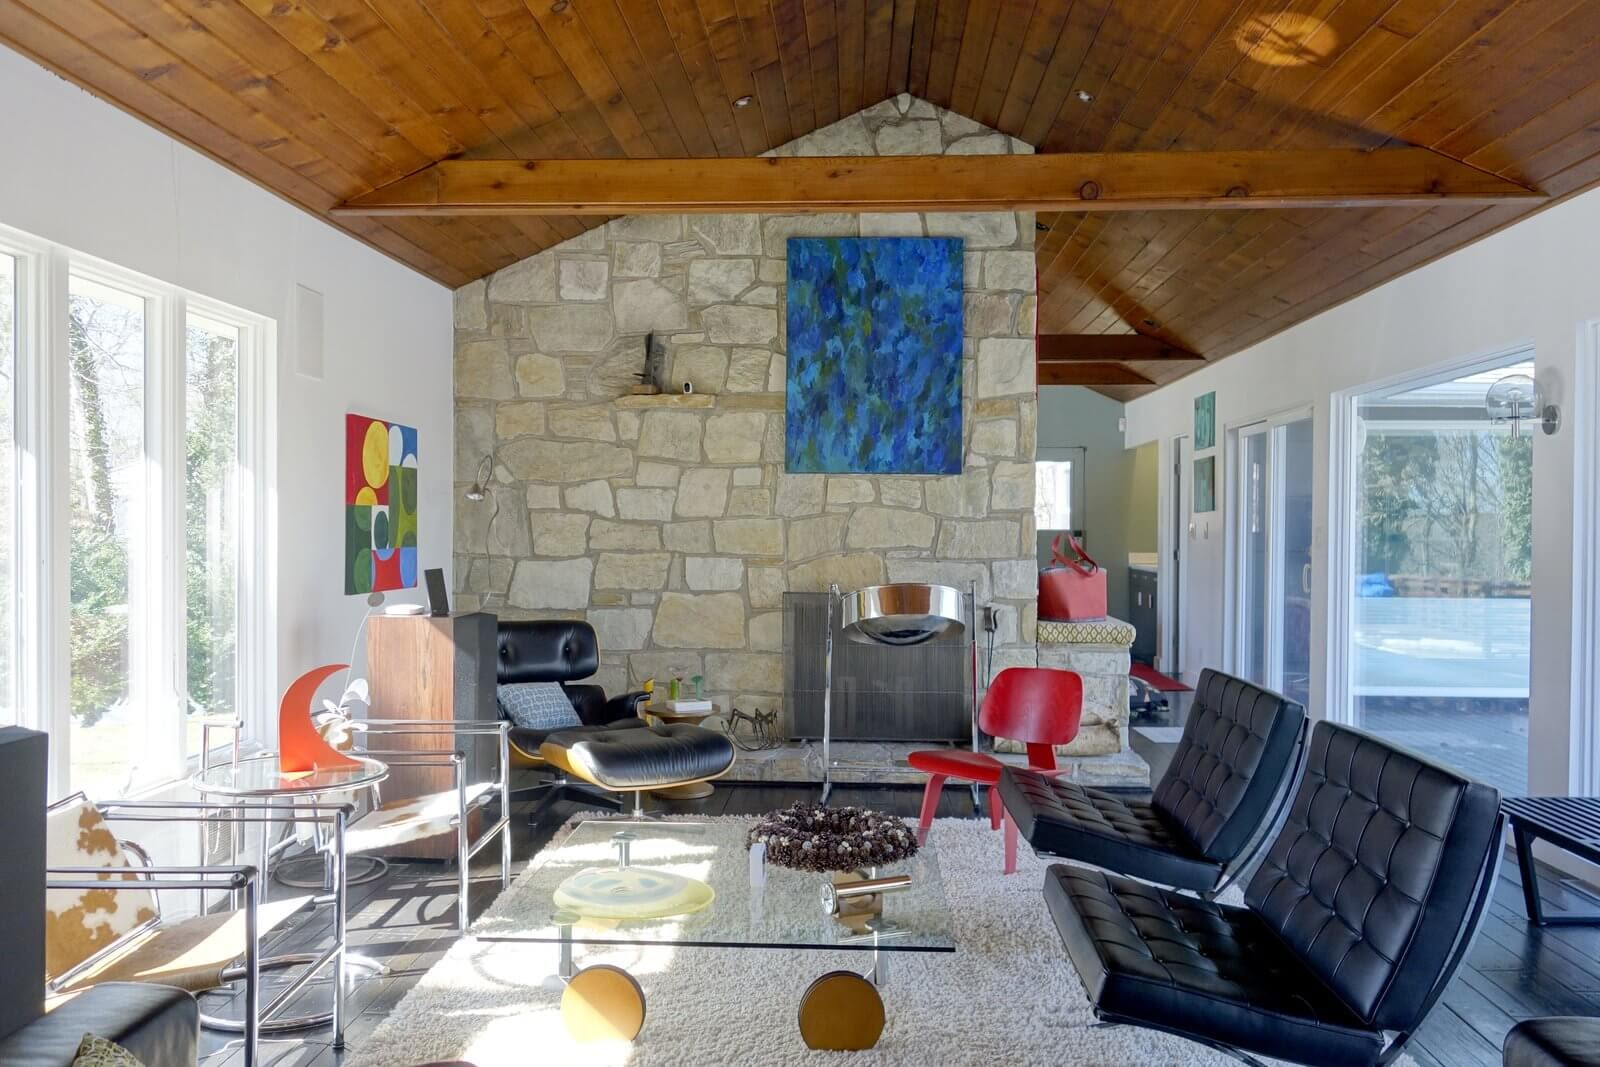 A ranch house living room with unique couches, a glass table, and distinct paintings